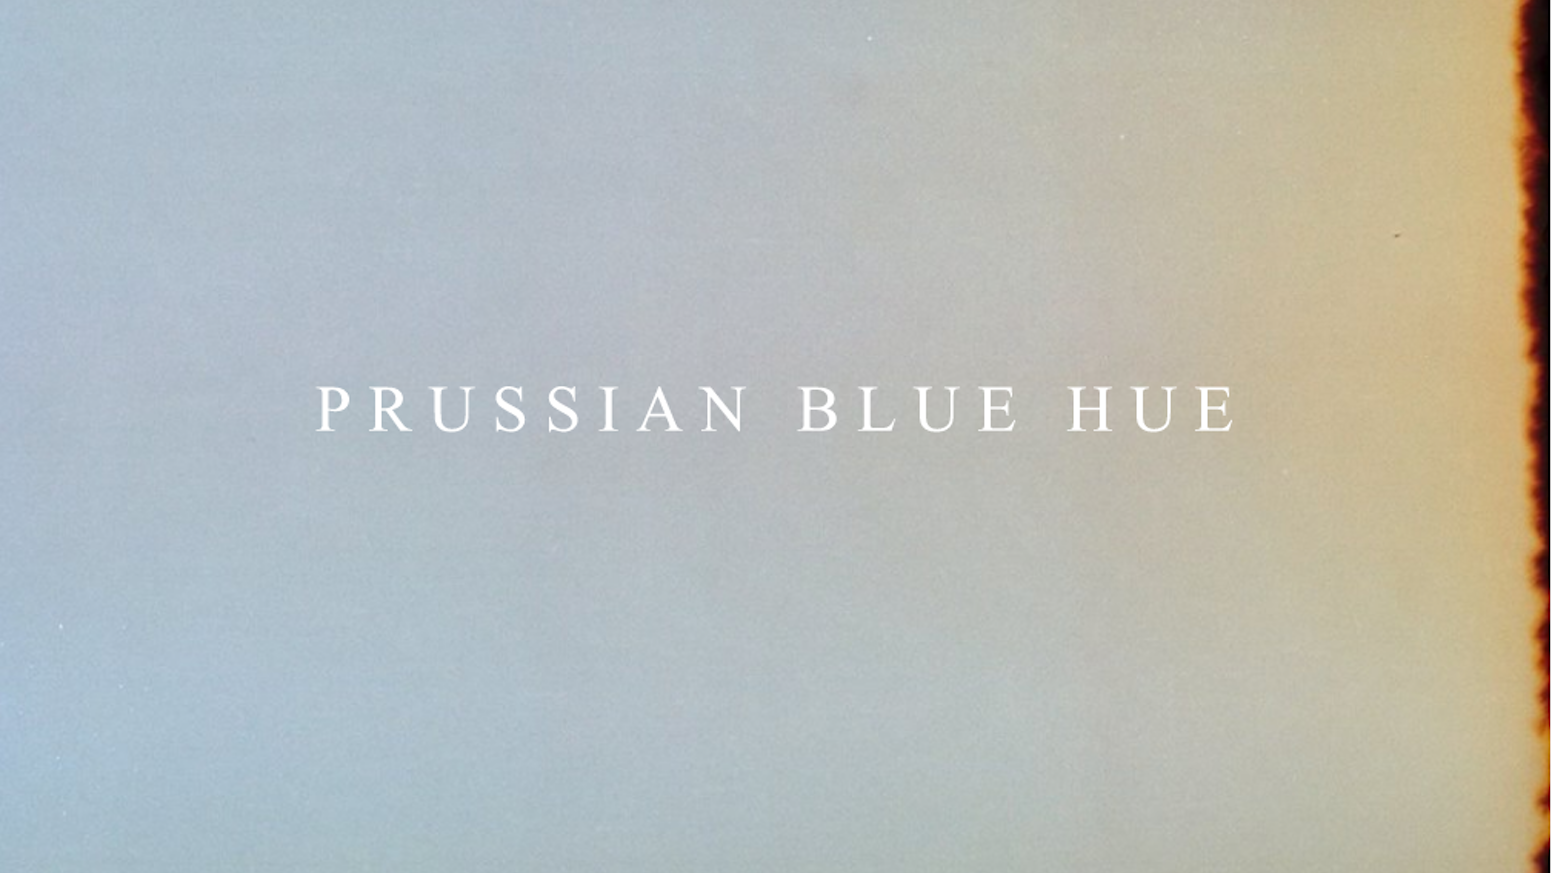 Prussian Blue Hue by Sophie May » Meet our Collaborators! — Kickstarter